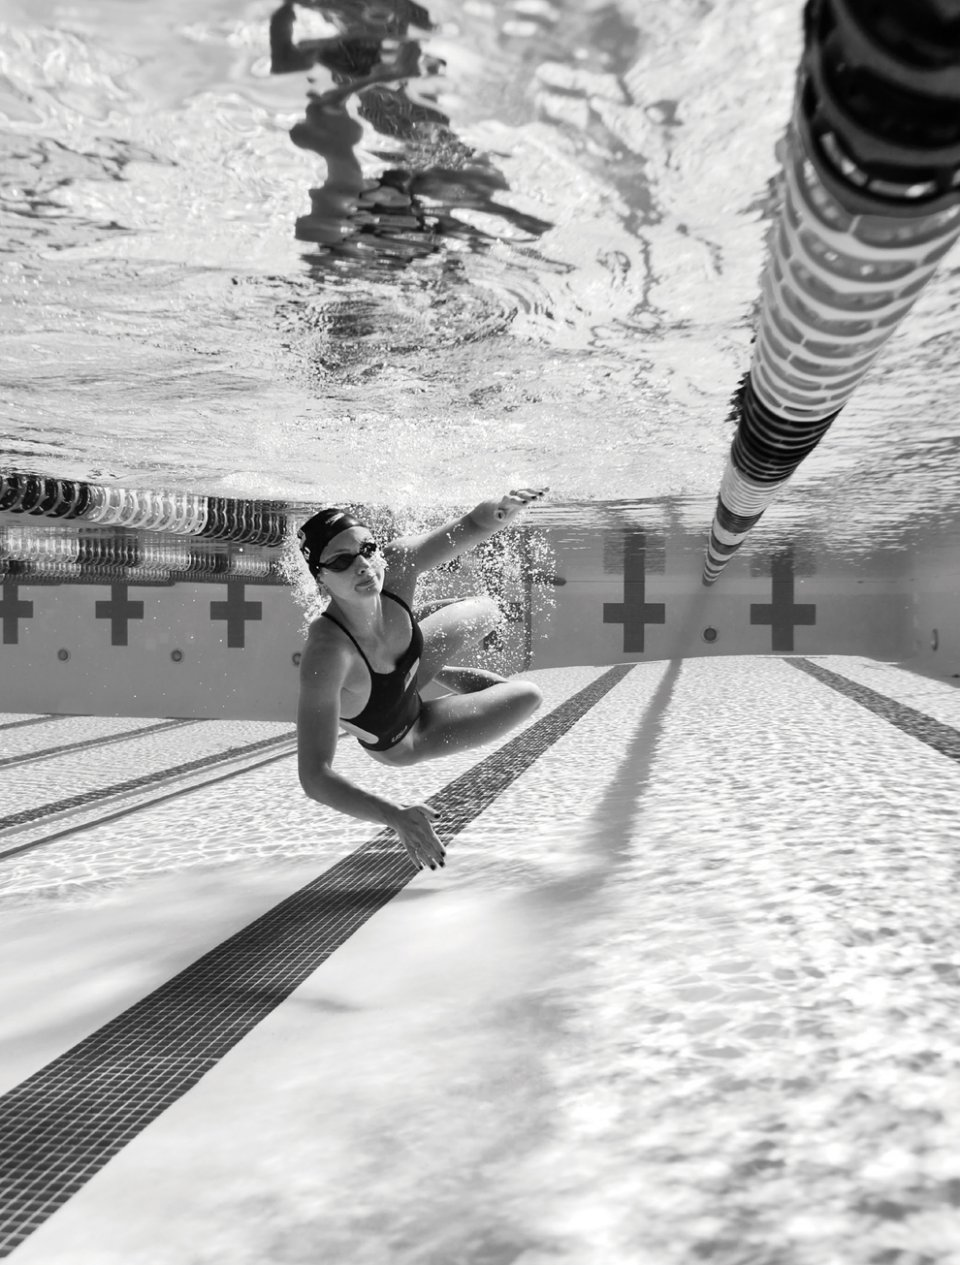 Katie Meili '13 photographed under water